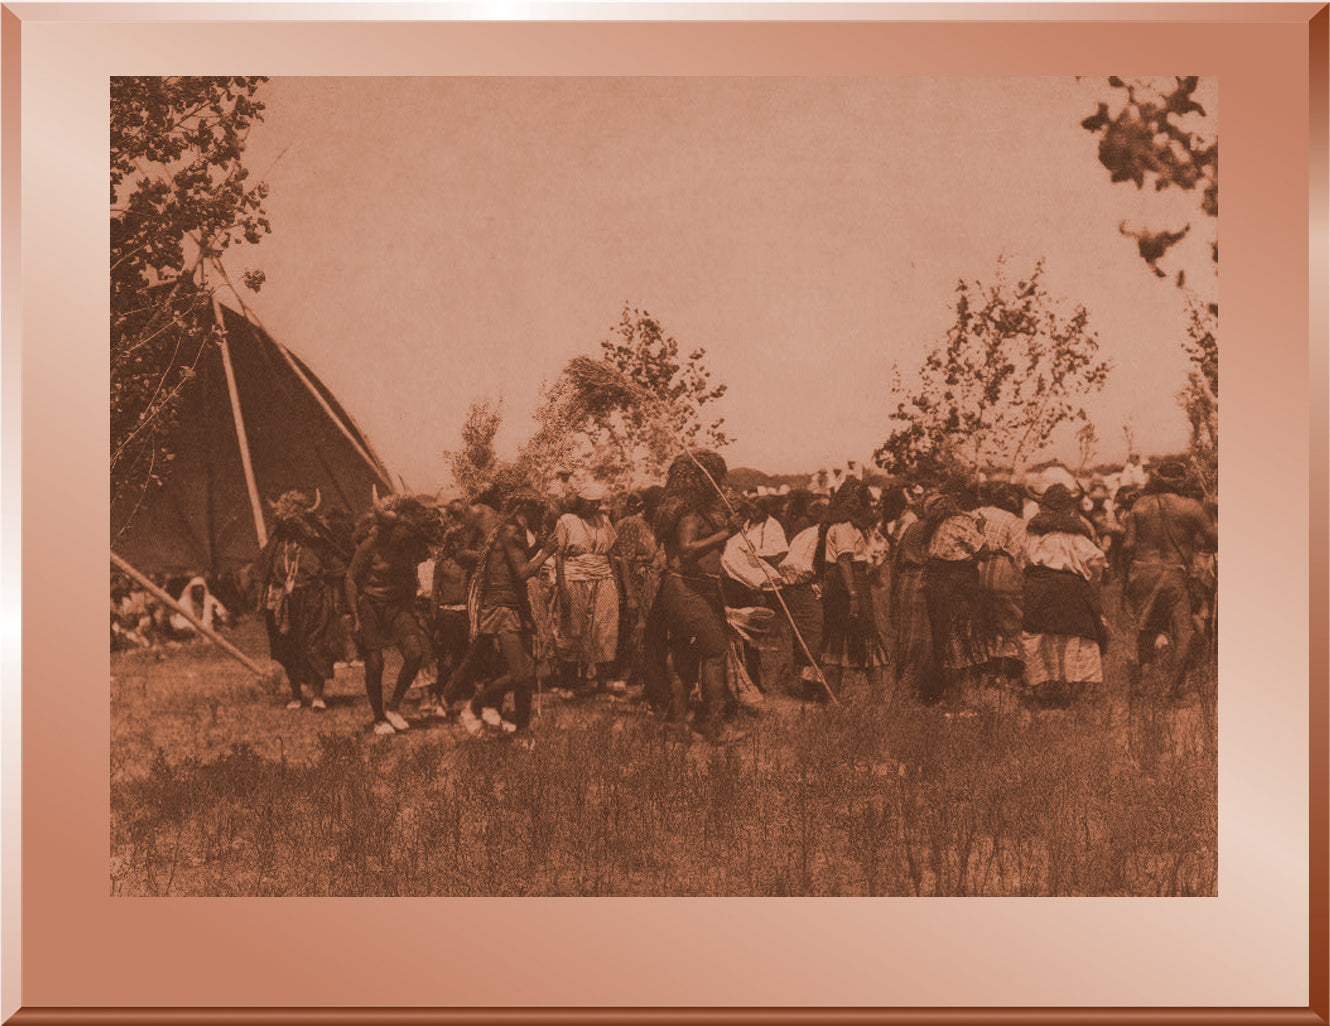 Buffalo Society, Animal Dance - Cheyenne